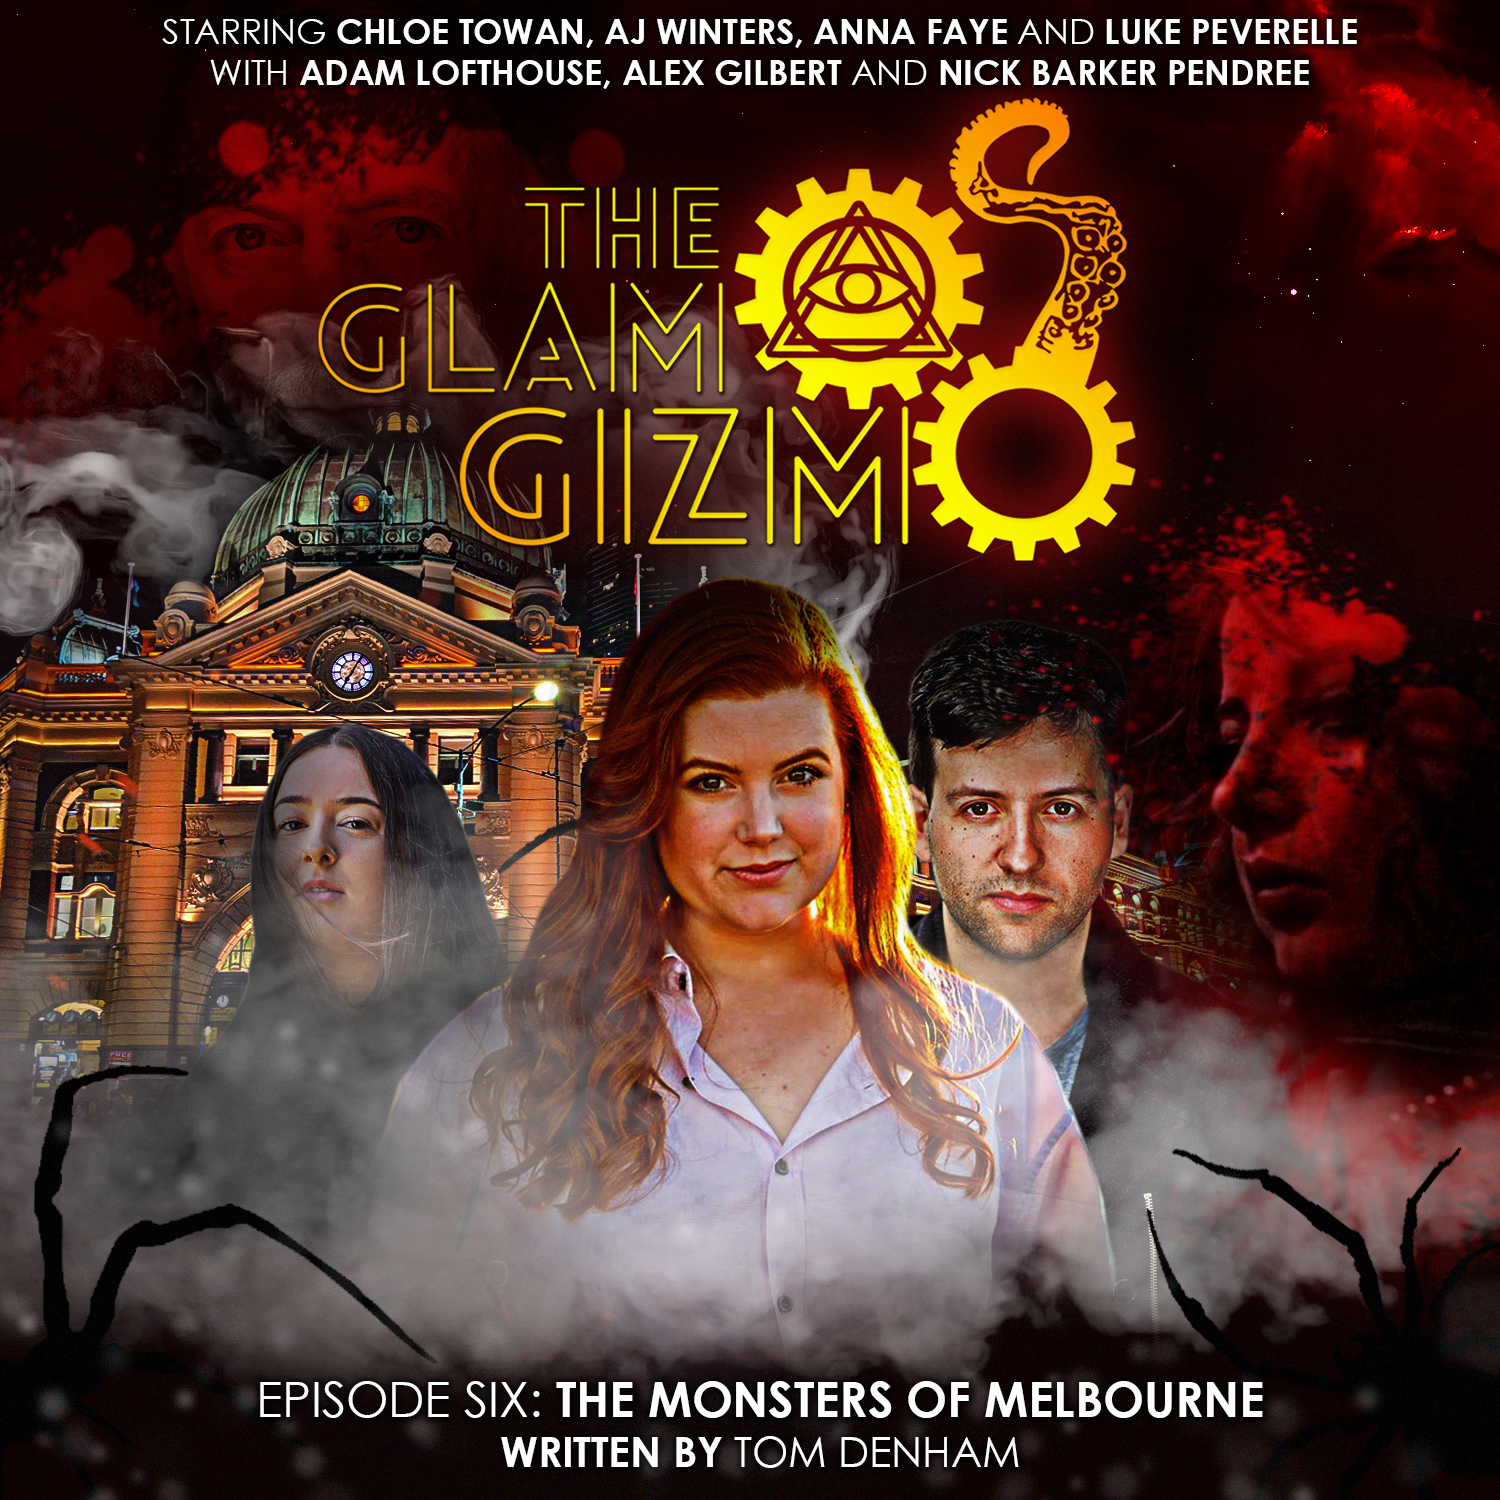 6. The Monsters of Melbourne